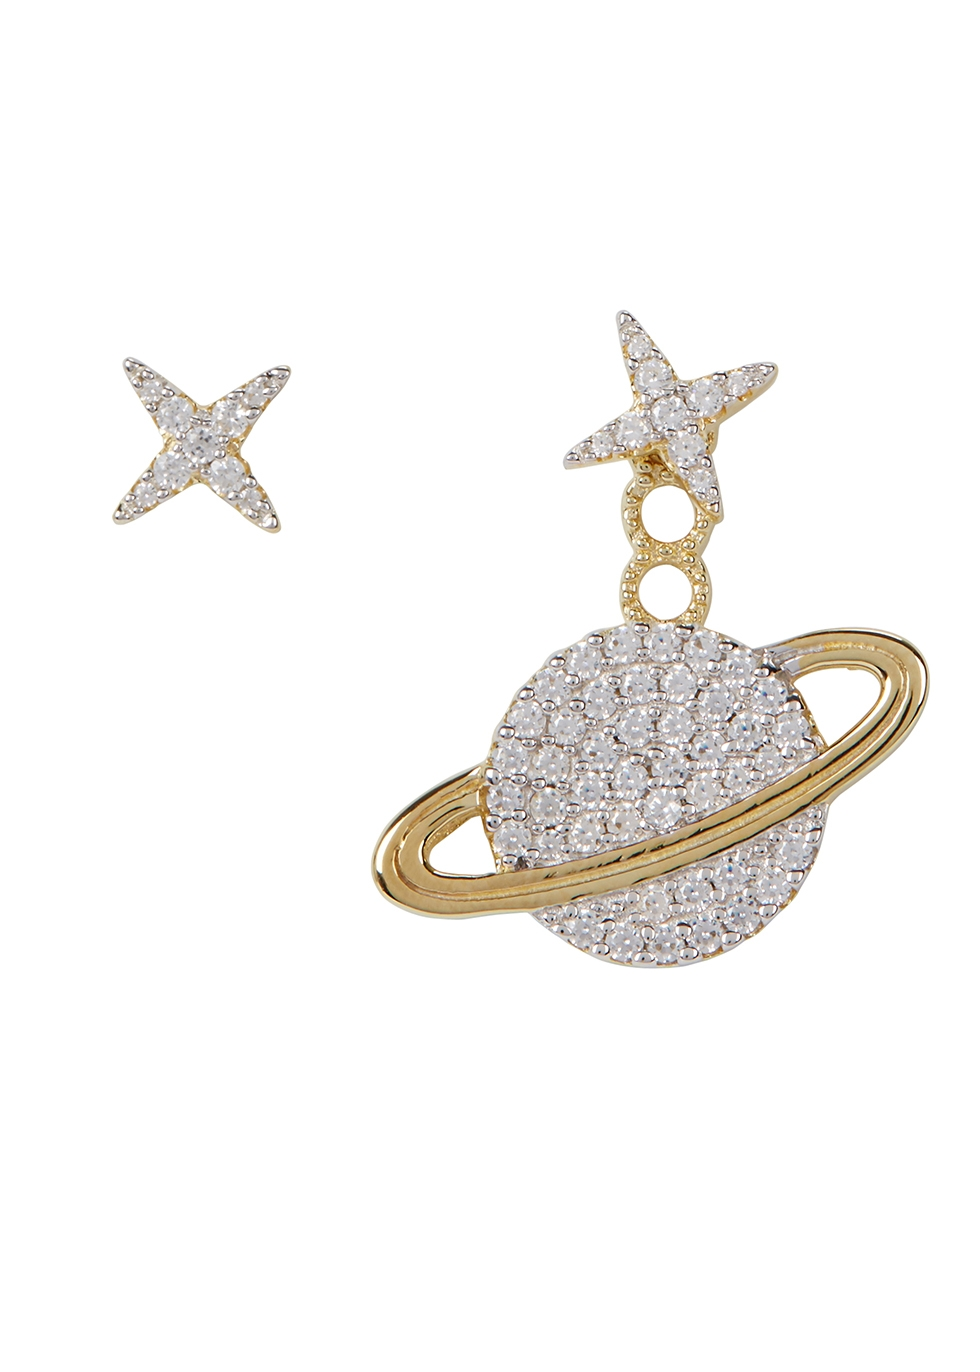 APM MONACO Asymmetric Star Crystal-Embellished Earrings in Gold